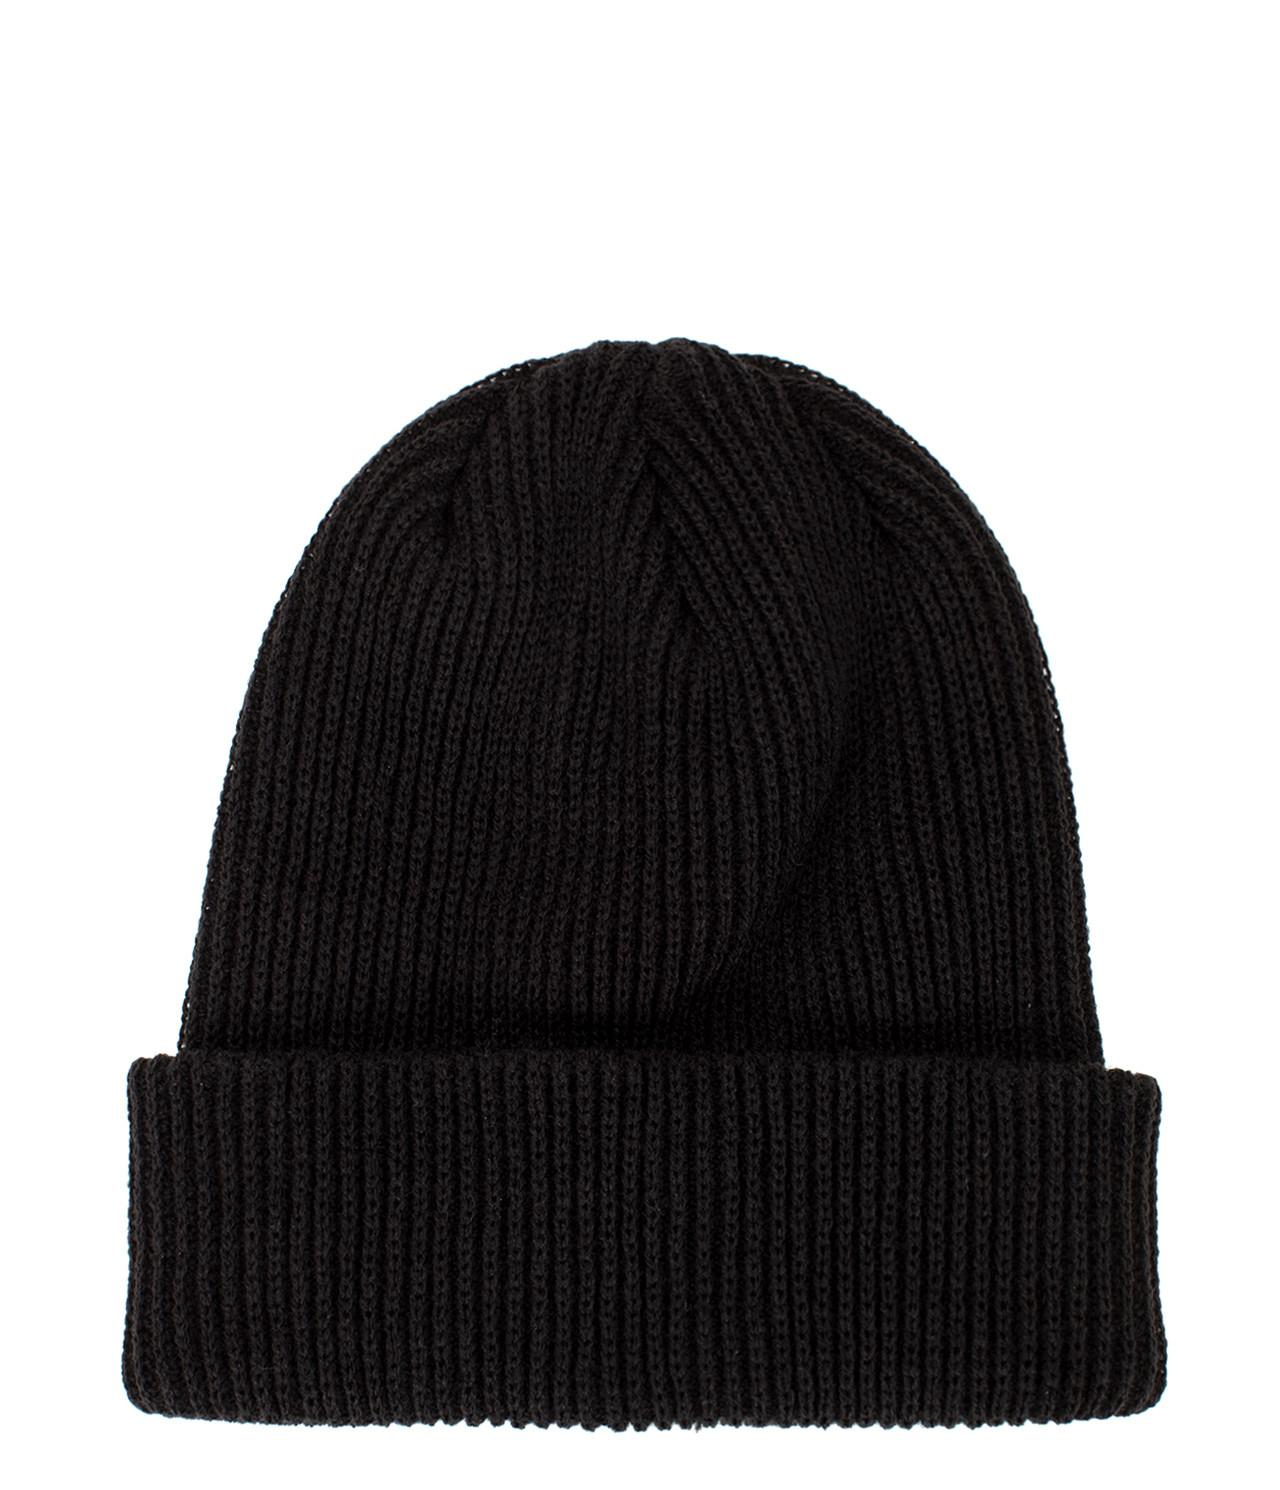 8539444b80e Stussy - Black Small Patch Watchcap Beanie for Men - Lyst. View fullscreen